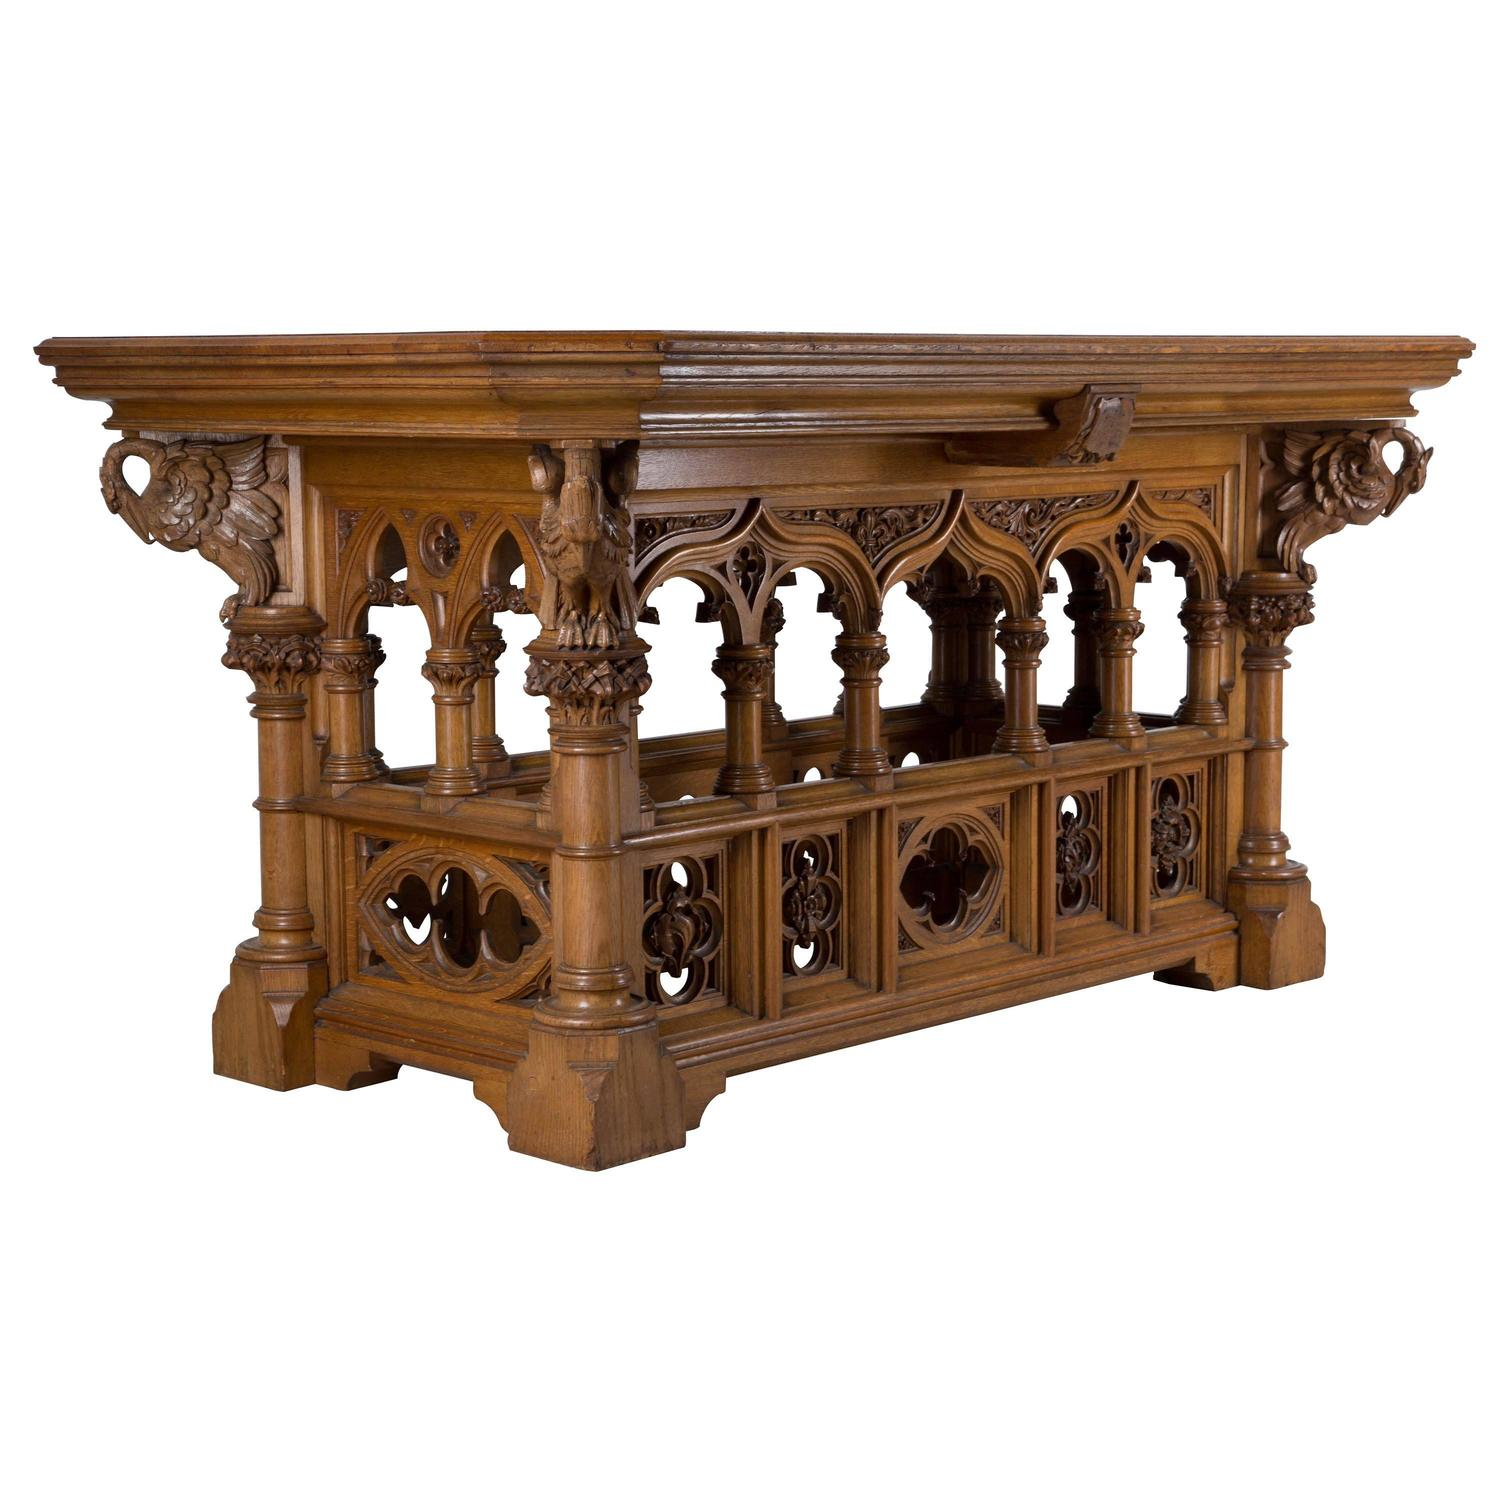 Gothic Revival Alter Table For Sale At 1stdibs